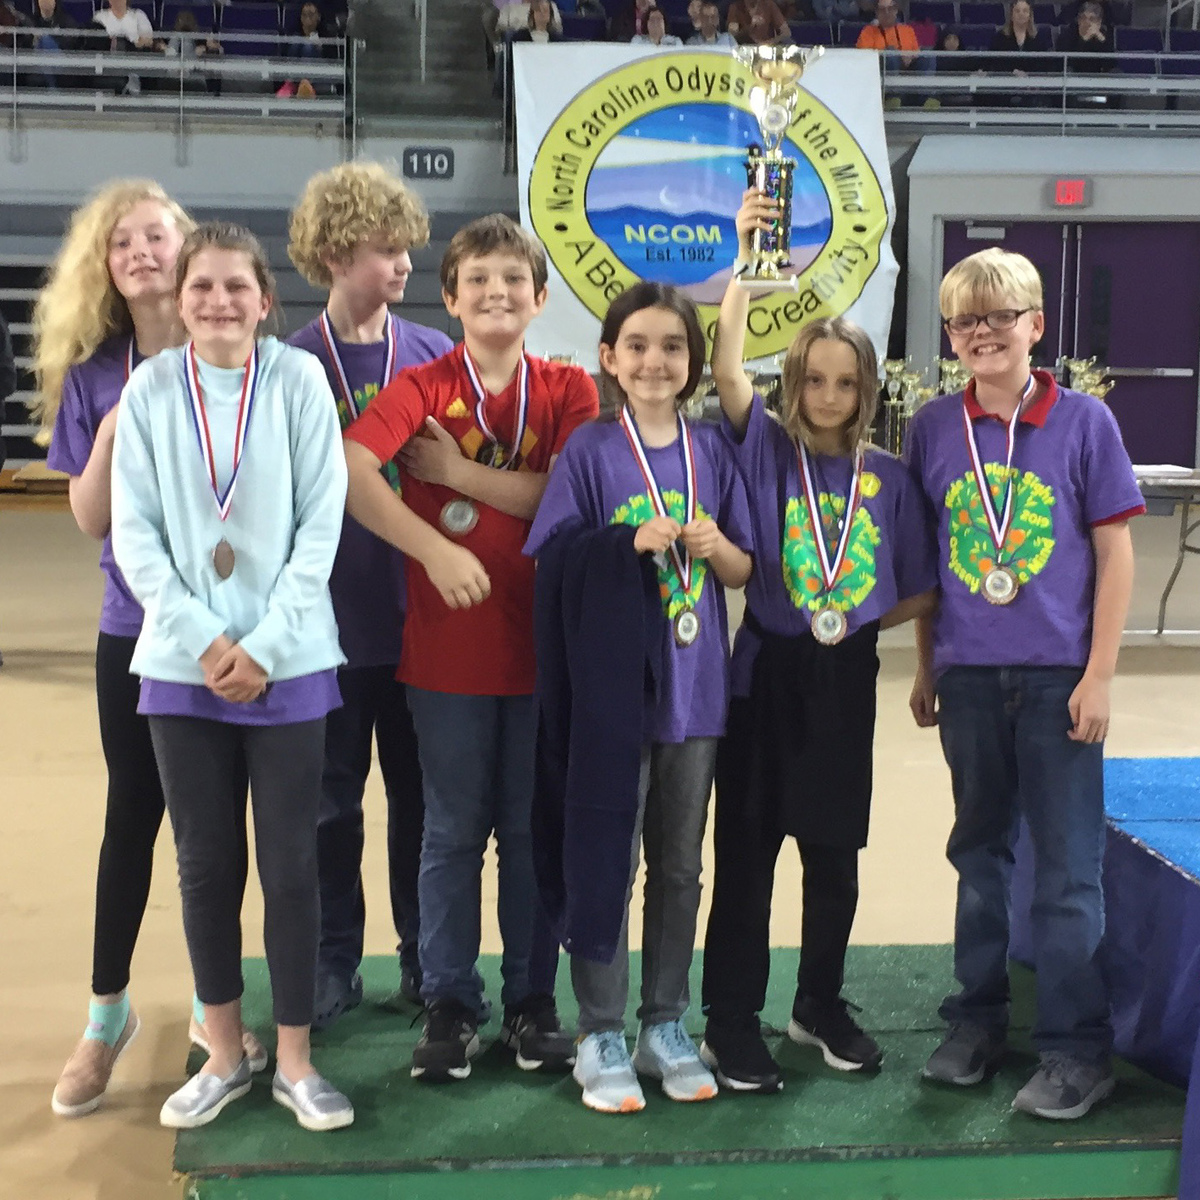 Carolina Day Team Earns 3rd Place at Odyssey of the Mind State Finals